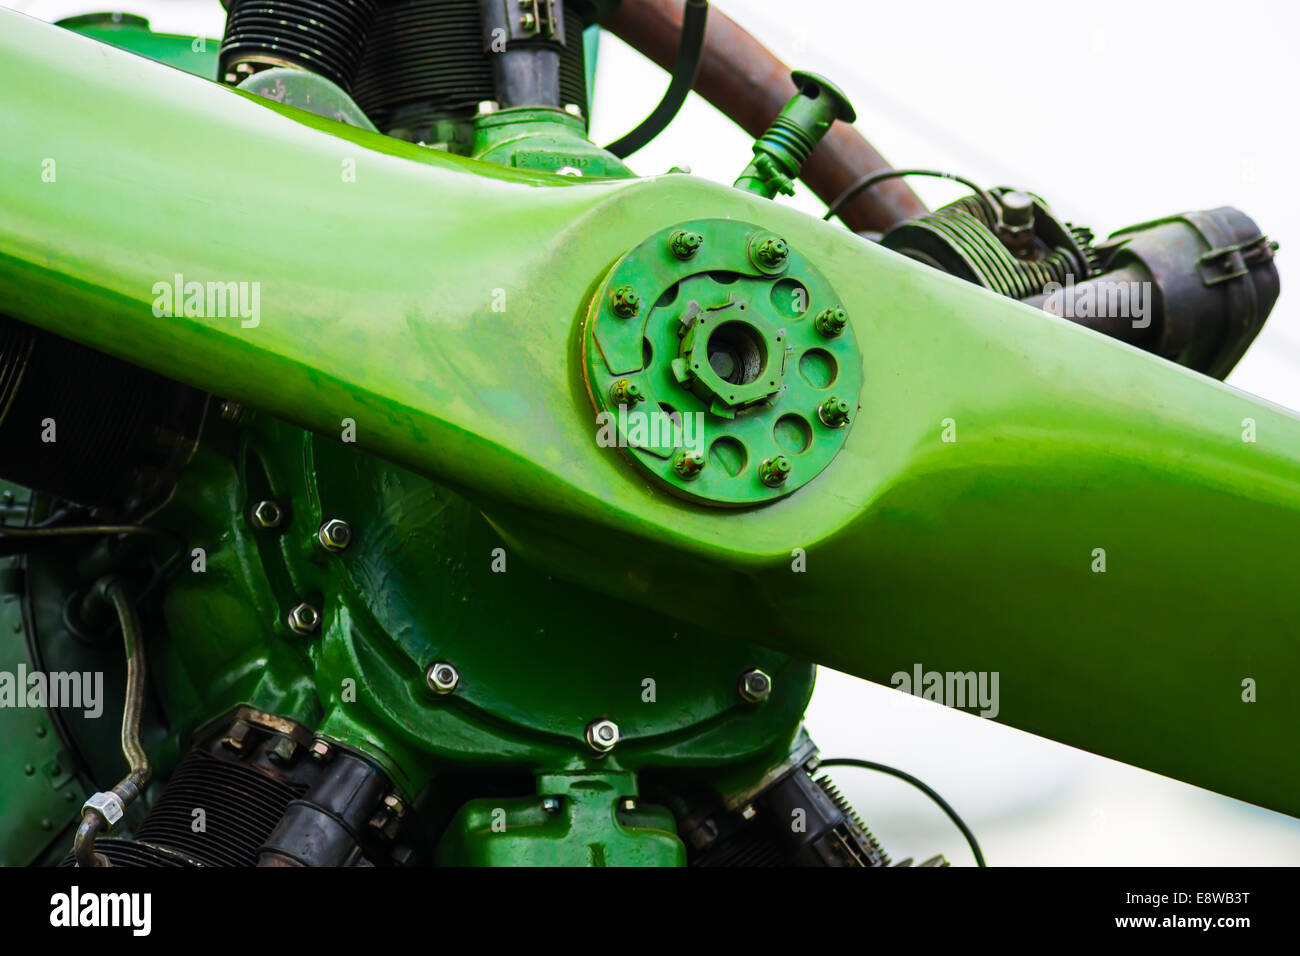 Green Age Of Aviation. Closeup view of the propeller of a vintage airplane. Piston engine, the beginning of the - Stock Image